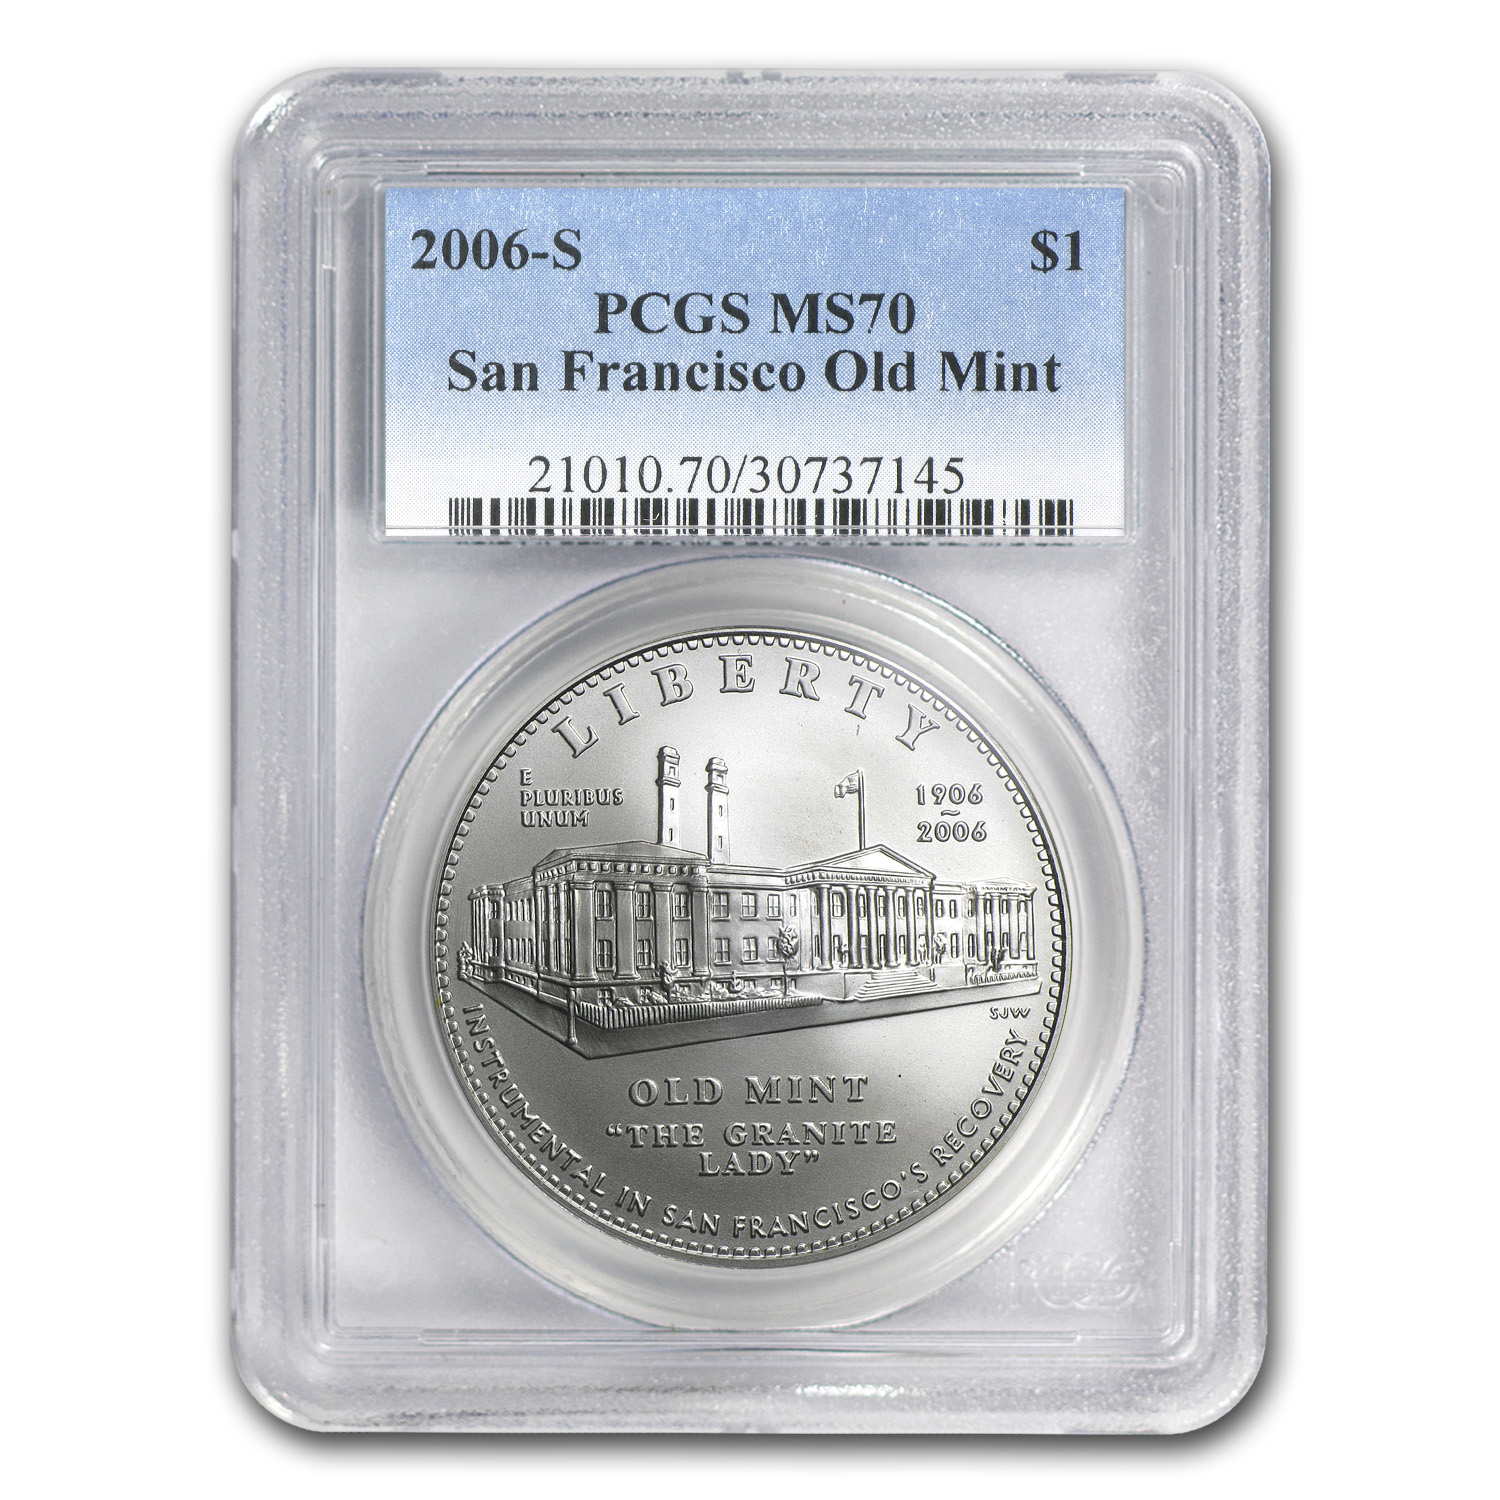 2006-S San Francisco Old Mint $1 Silver Commemorative MS-70 PCGS